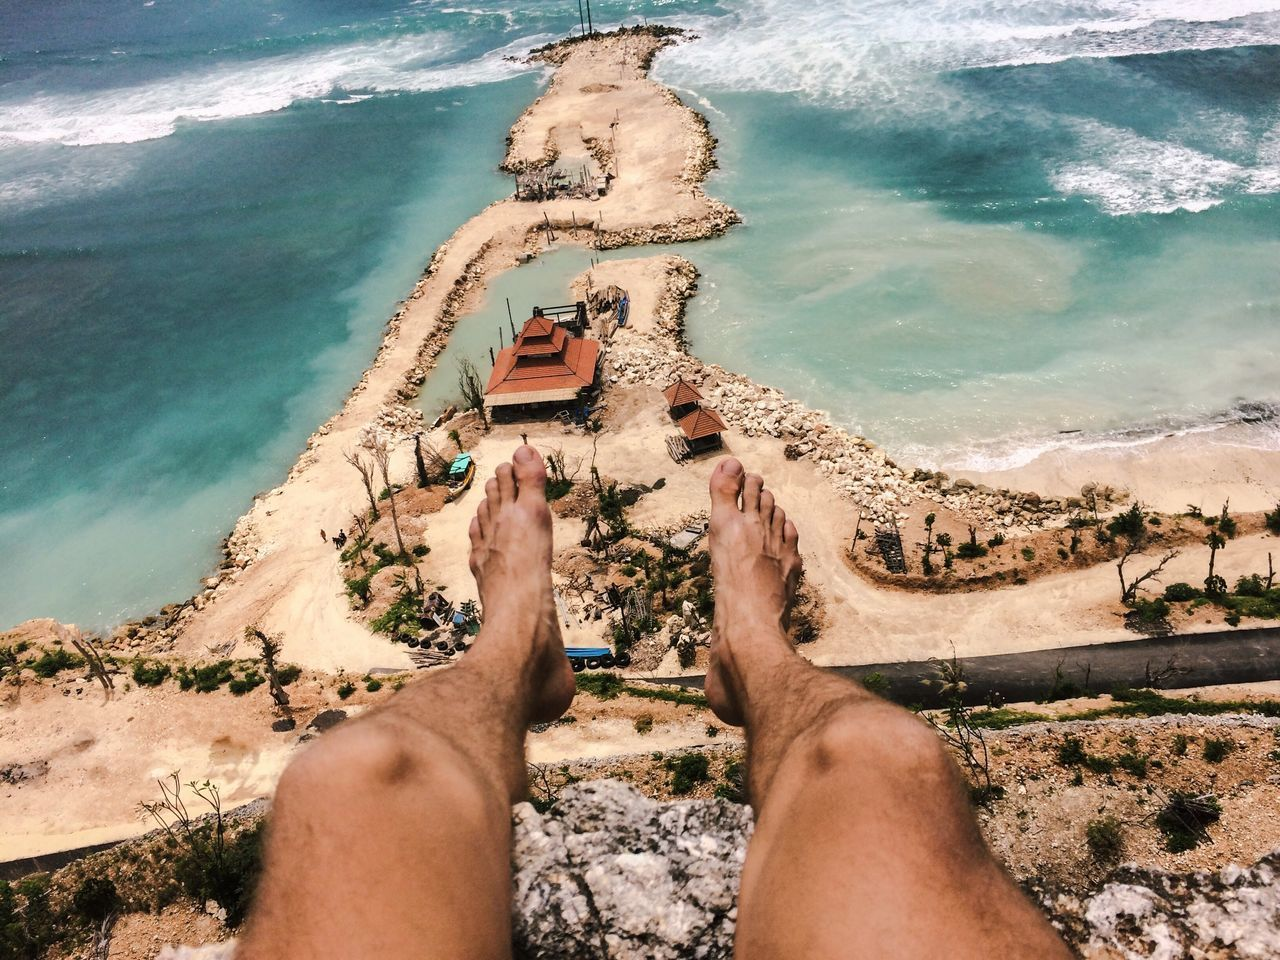 Arid Climate Balance Beach Carefree Cliff Enjoying The View Escapism Exploring Feet From Above  From My Point Of View Geology Legs Leisure Activity Lifestyles Men Outdoors Real People Relaxation Sand Sea Shore Summer Vacations Water